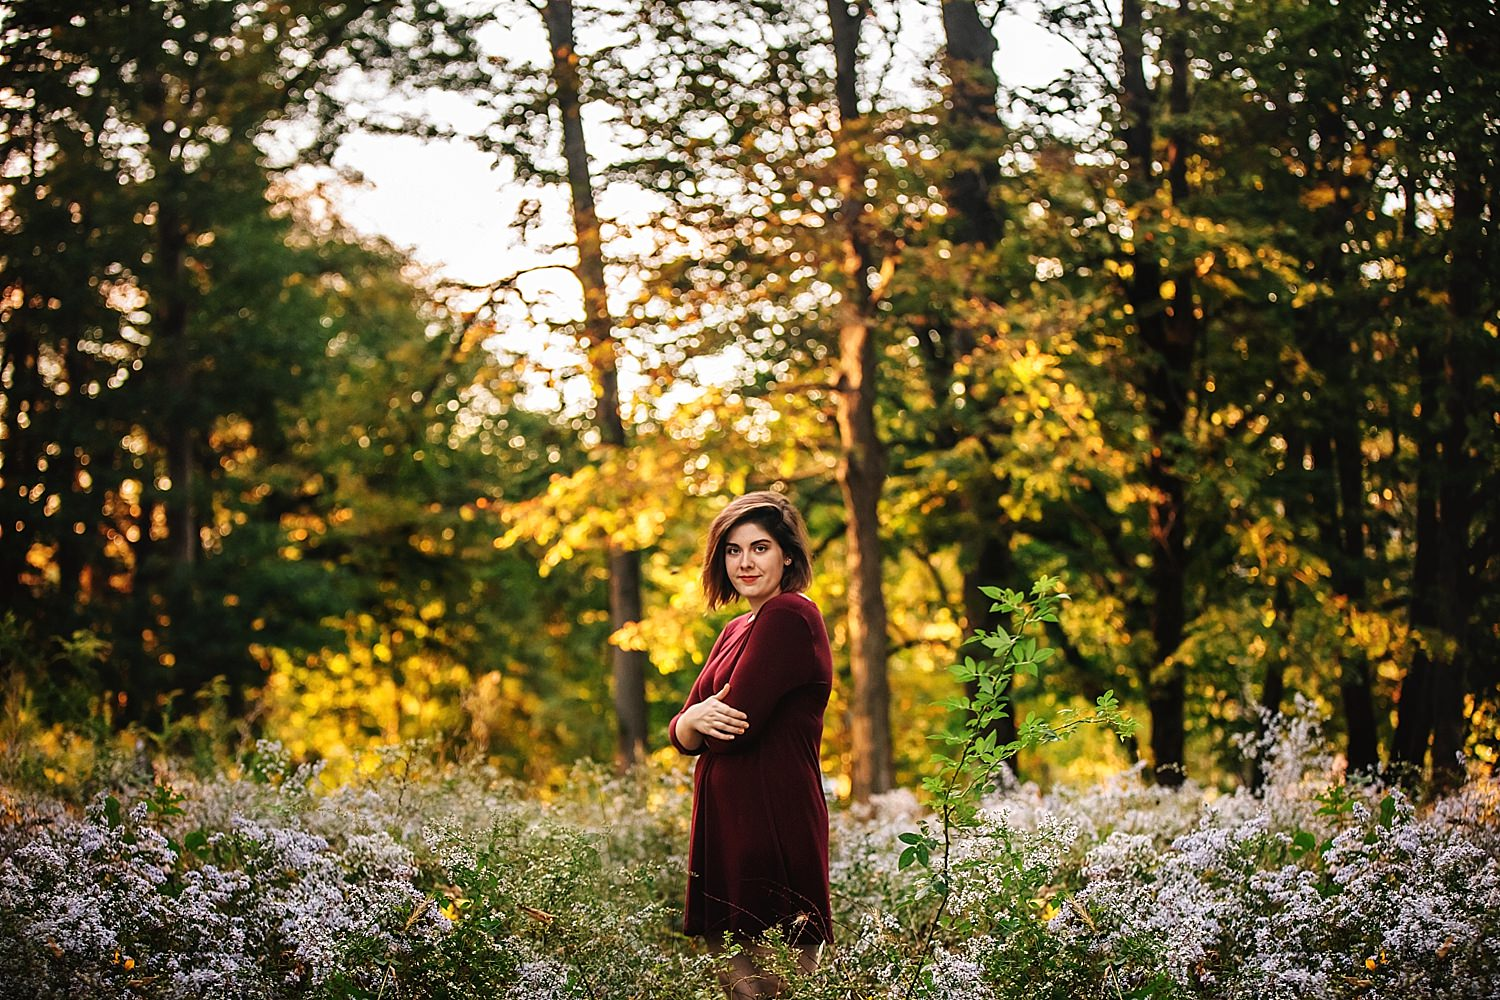 girls senior pictures at dawes arboretum in newark ohio